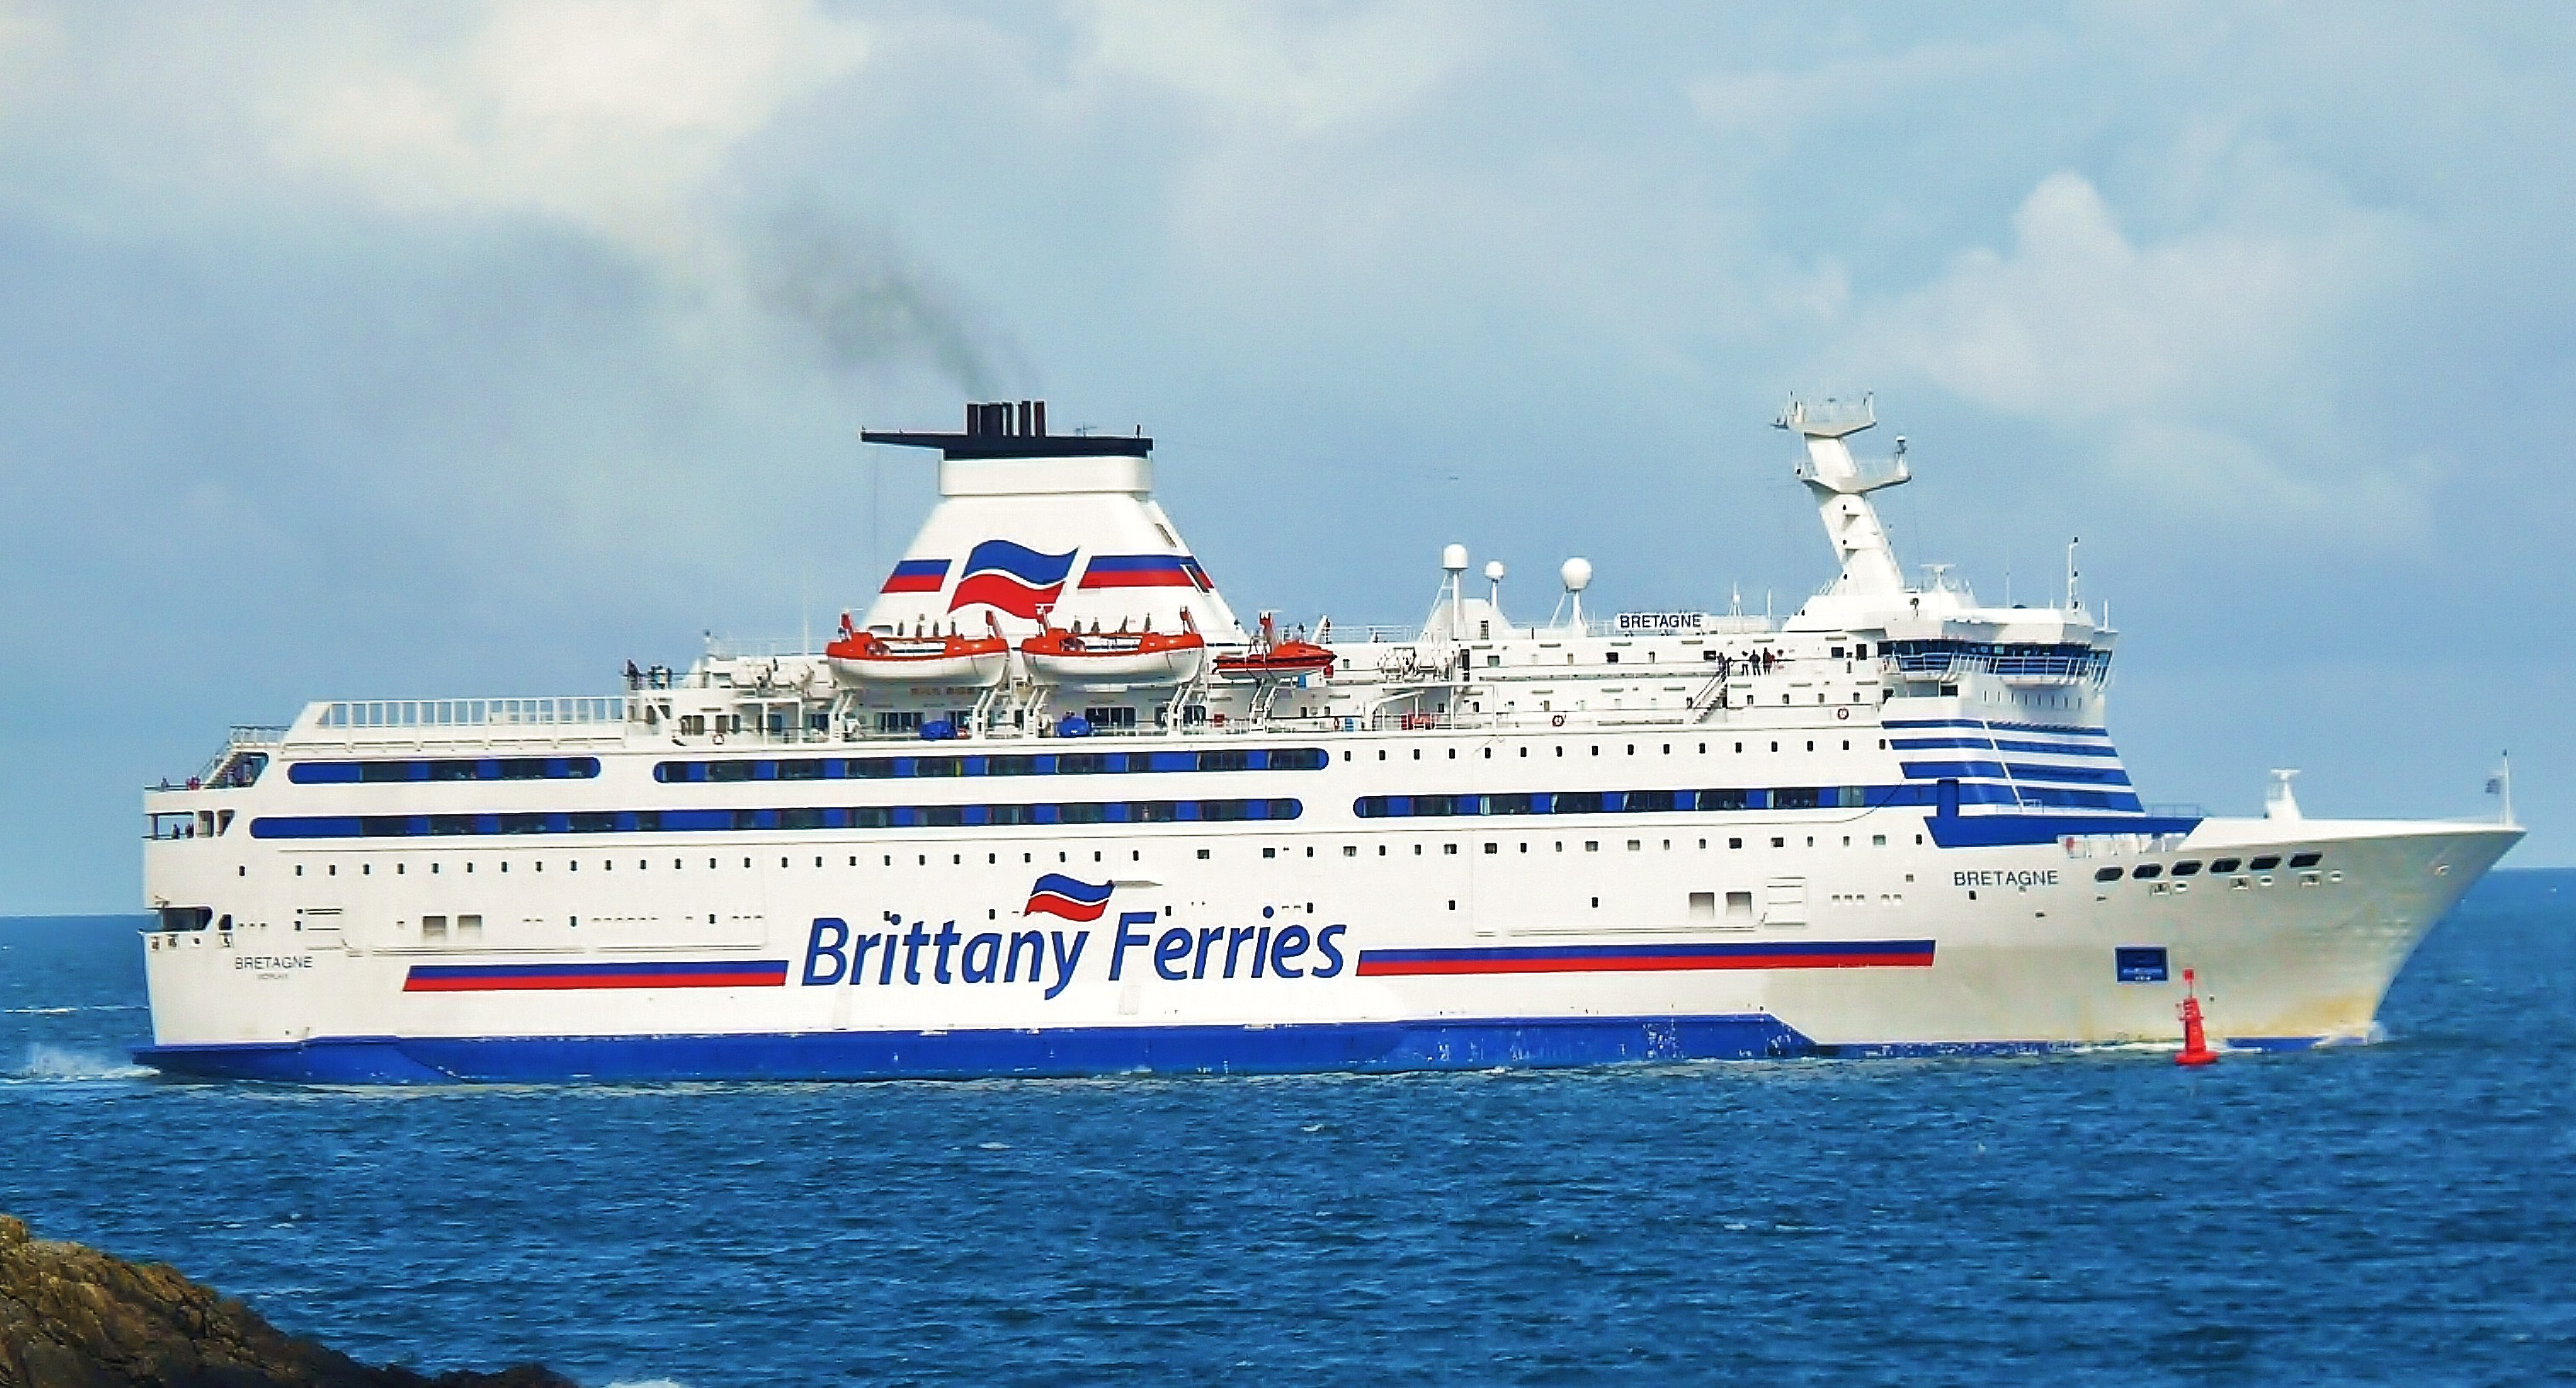 The Brittany Ferries MS Bretagne off Saint-Malo.